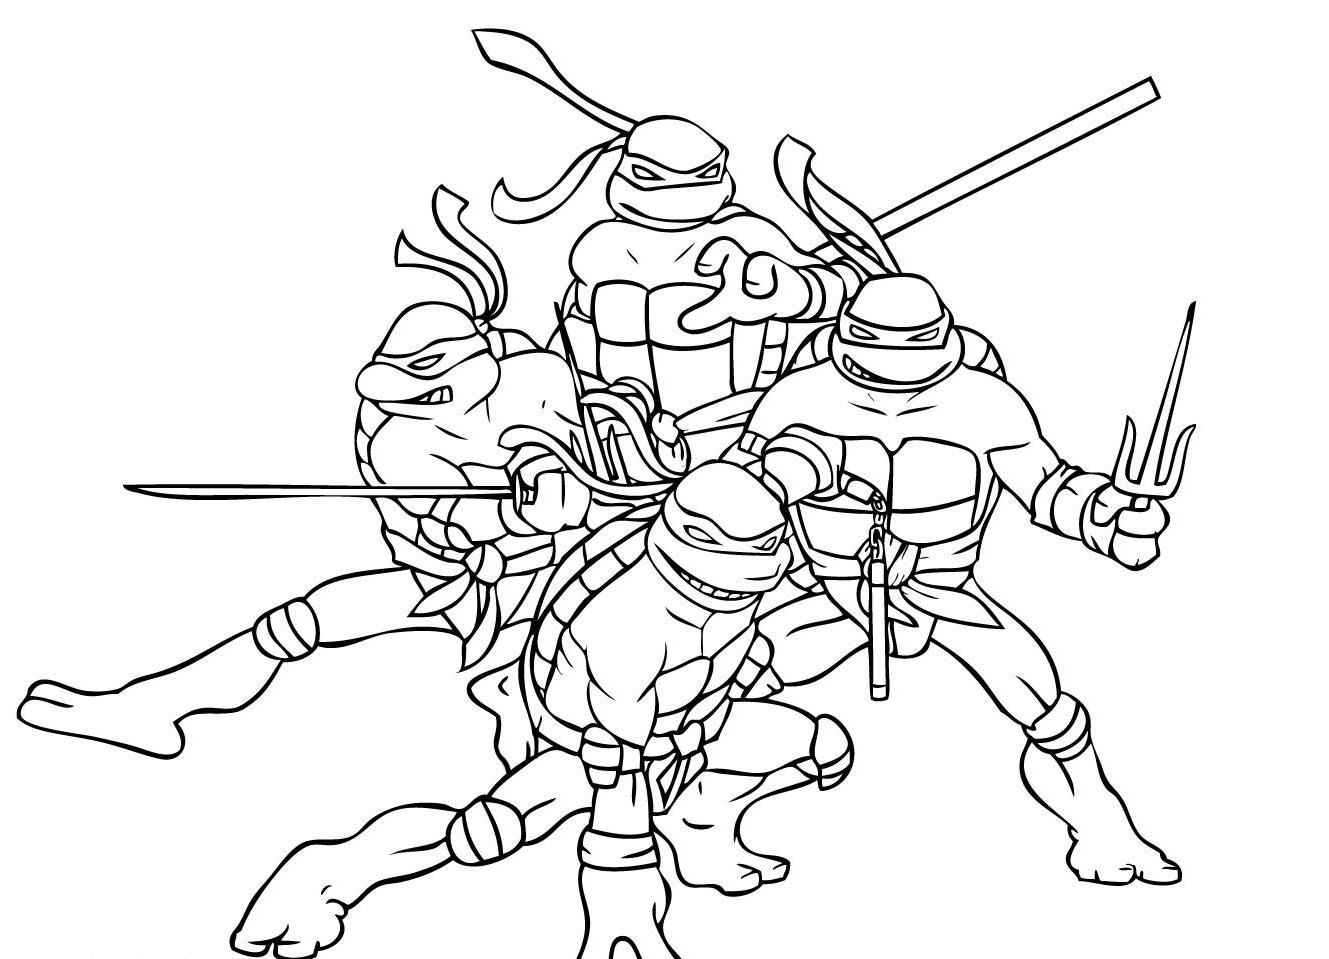 The Ninja Turtles Coloring Pages | Chase\'s Birthday Party | Pinterest